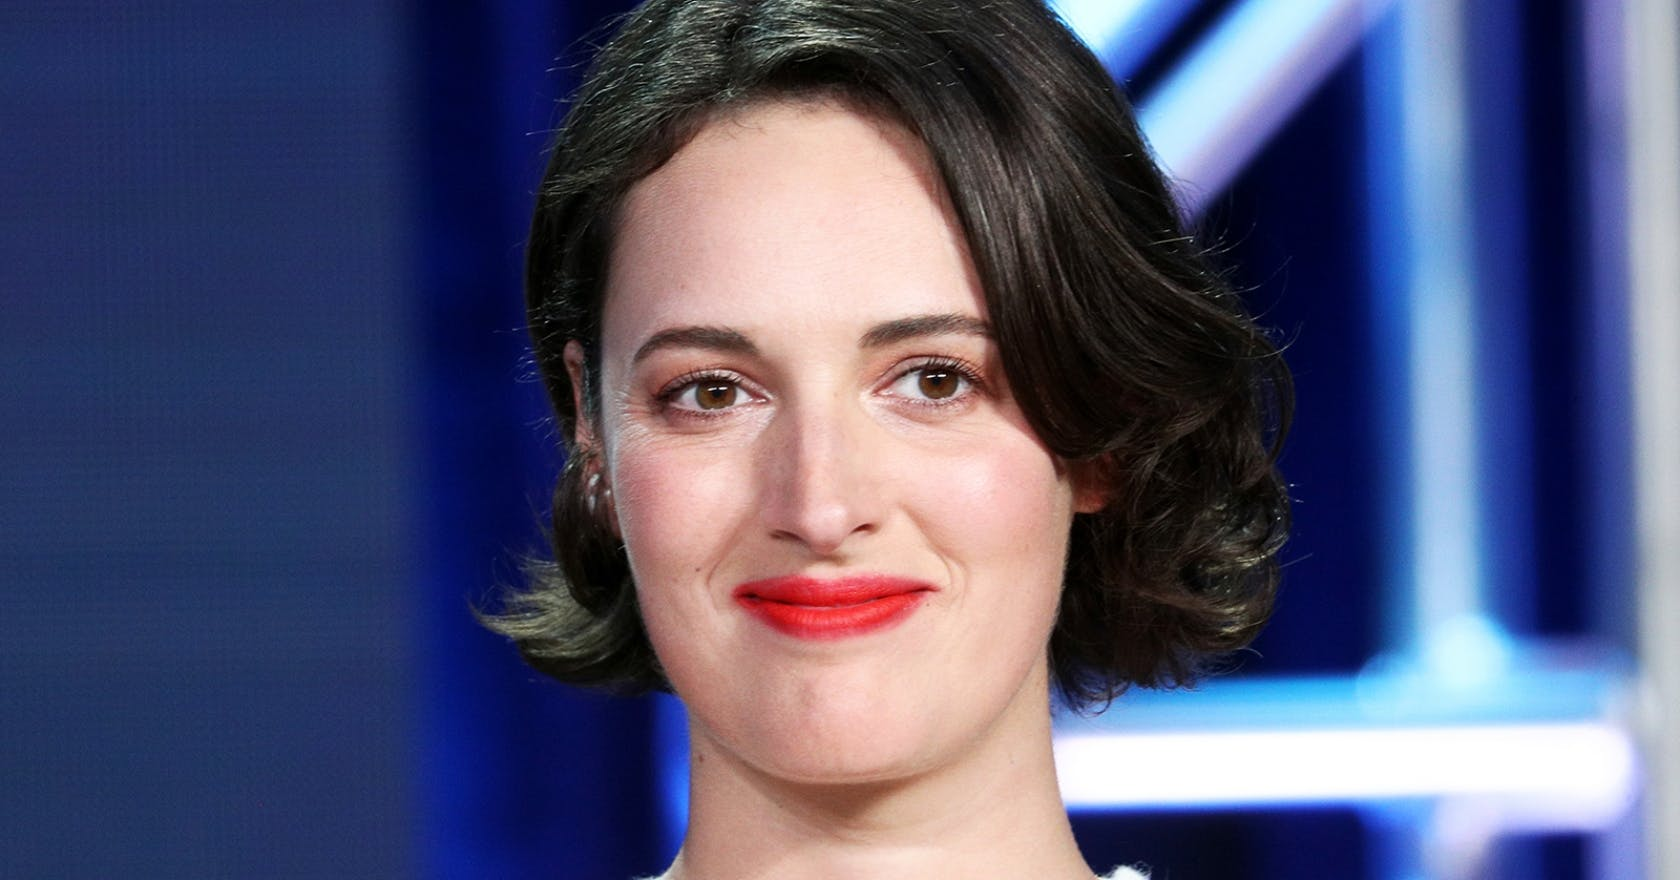 Phoebe Waller-Bridge has this message for the NHS